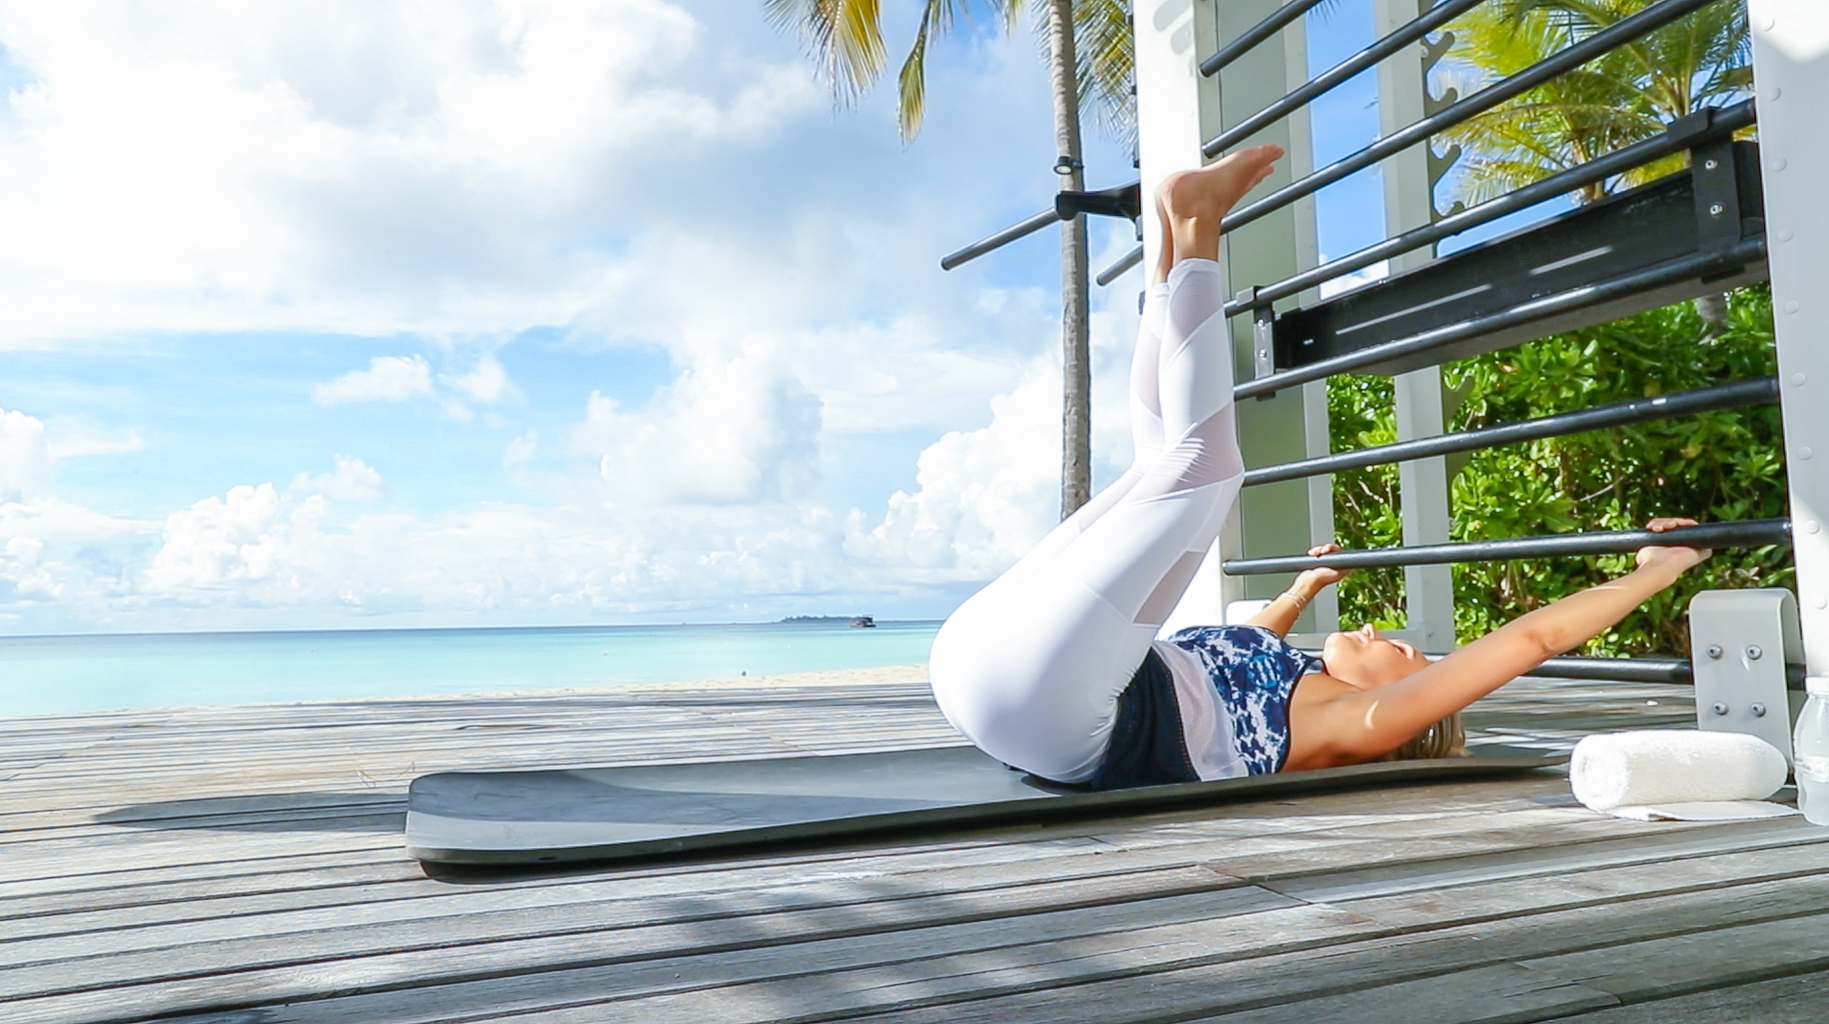 Fitness On Toast Faya Blog Girl Healthy Workout Training Maldives Working Out Ab Routine Beach Easy Moves Rock Hard Stomach Abdominals-6